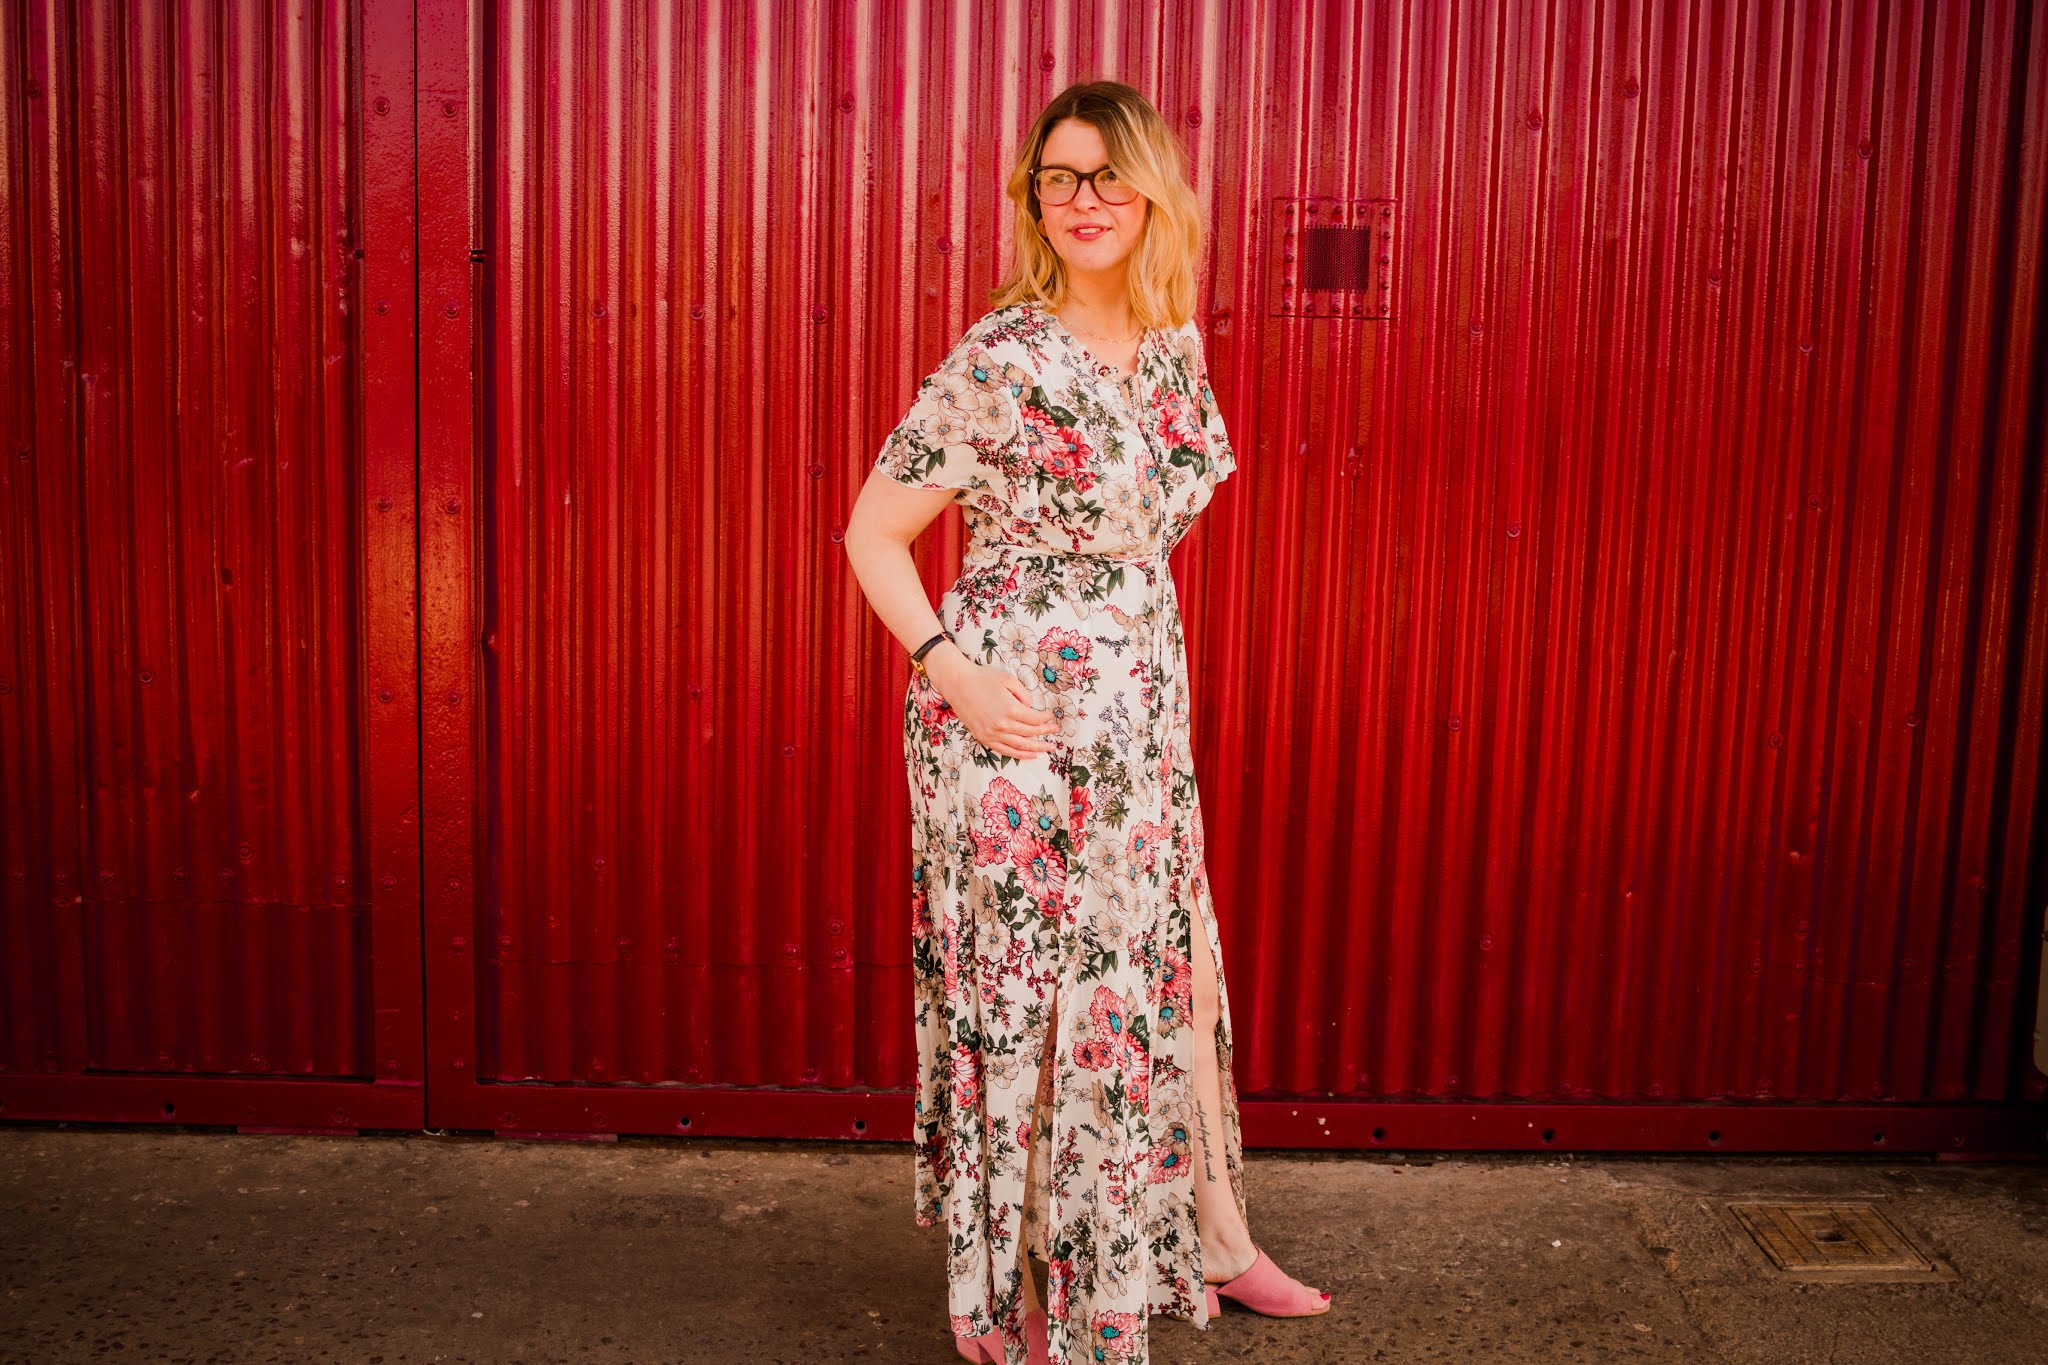 Fashion blogger wearing floral midi dresses. Wedding guest outfit inspiration